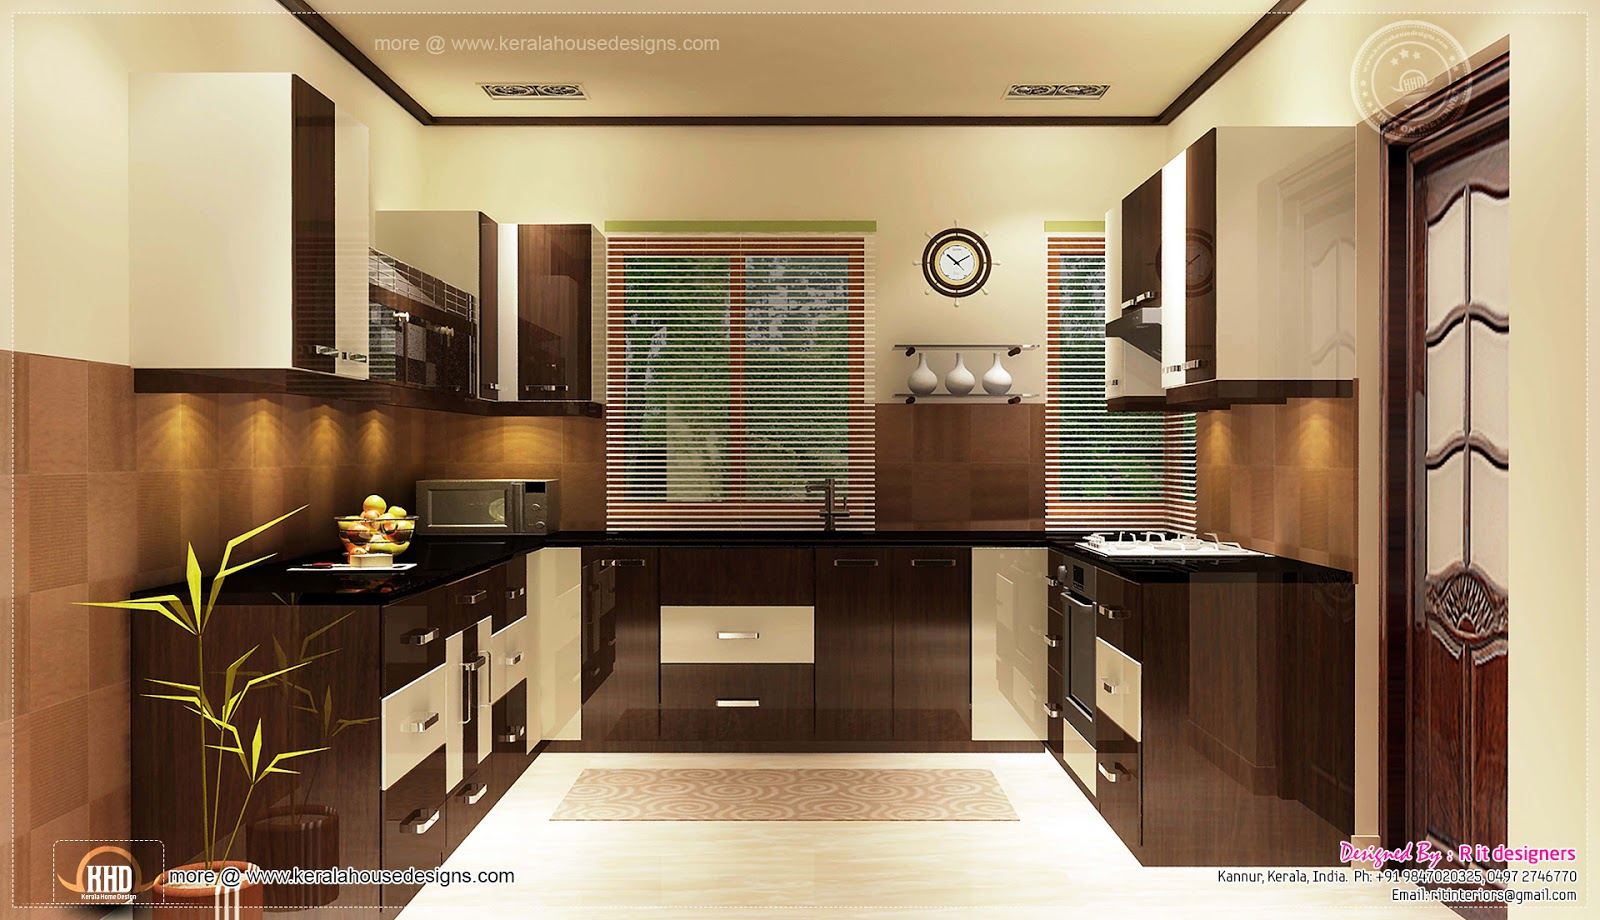 Home interior designs by rit designers kerala home for Home internal design